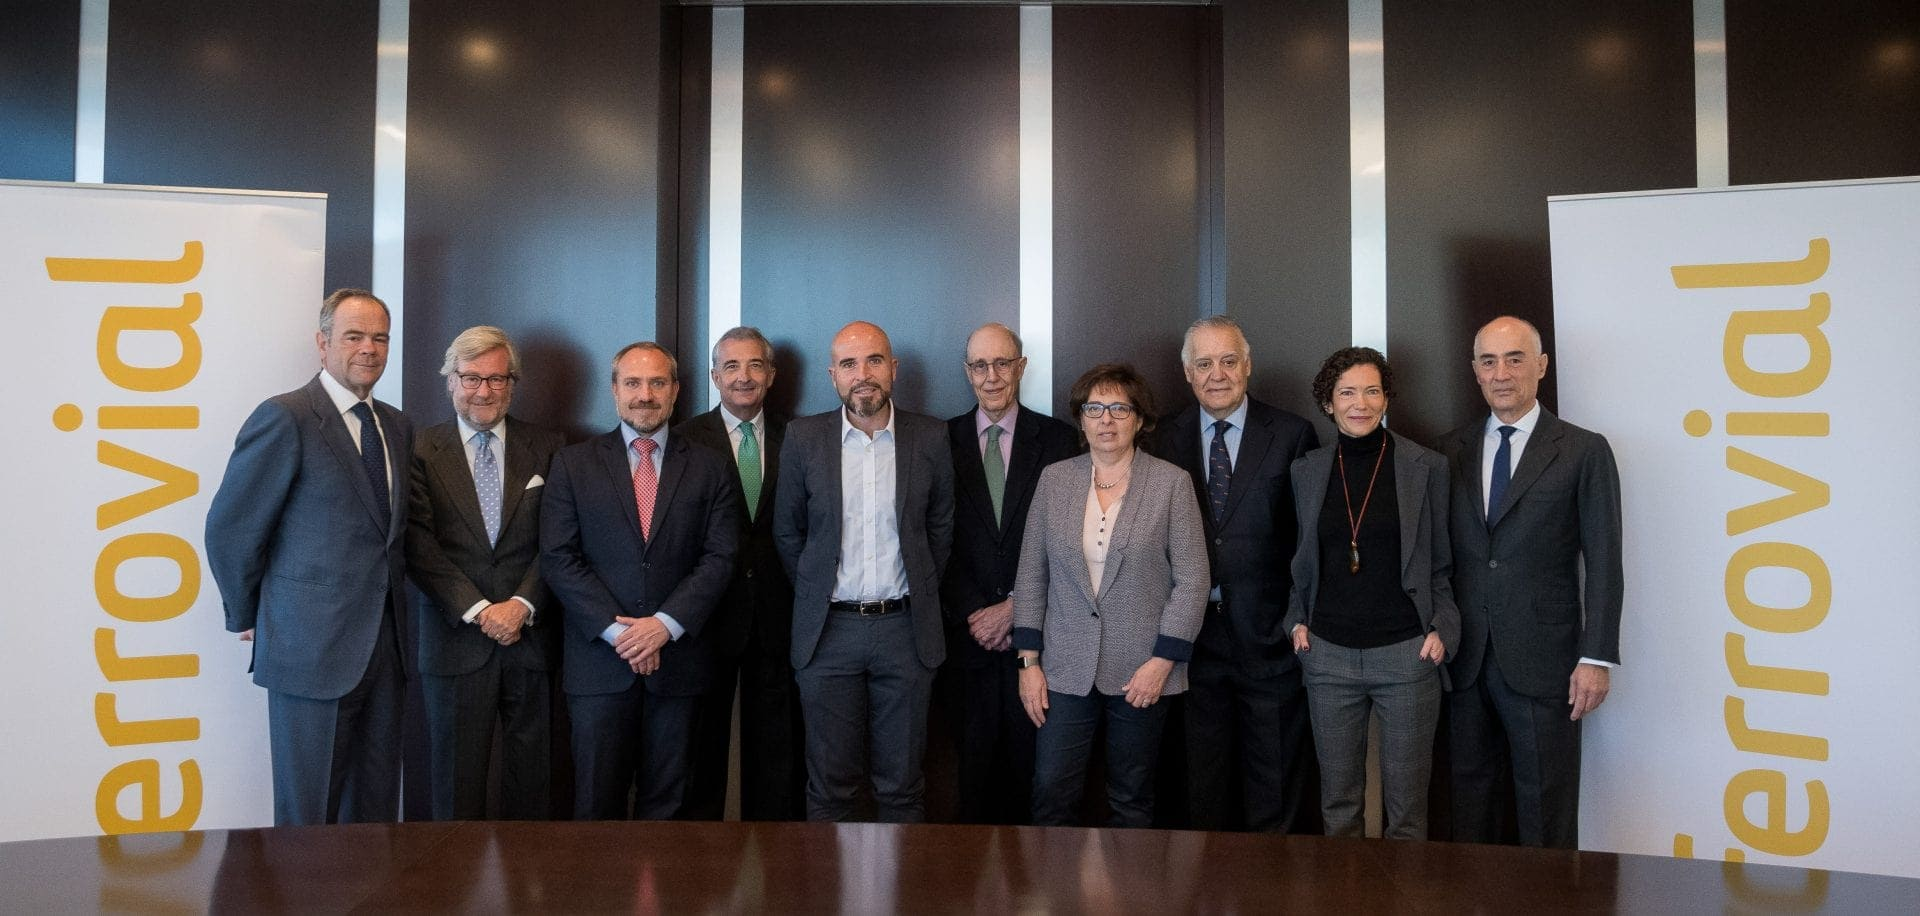 From left to right: Íñigo Meirás, CEO of Ferrovial; Benjamín Aparicio, Chairman of World Vision; Javier Ruiz, Manager Director for Spain of World Vision; José Ignacio Caballero, Chairman of the Delagte Commission of Fundación Altius; Pablo Aledo Martínez, Manager Director of Fundación Altius; José Luis Leal, Chairman of Acción Contra el Hambre; Carmen Gayo, Communication and Fundraising Director of Acción Contra el Hambre; Jaime Montalvo, Chairman of Ayuda en Acción; Marta Marañón, External Affairs Director of Ayuda en Acción; and Rafael del Pino, Chairman of Ferrovial.